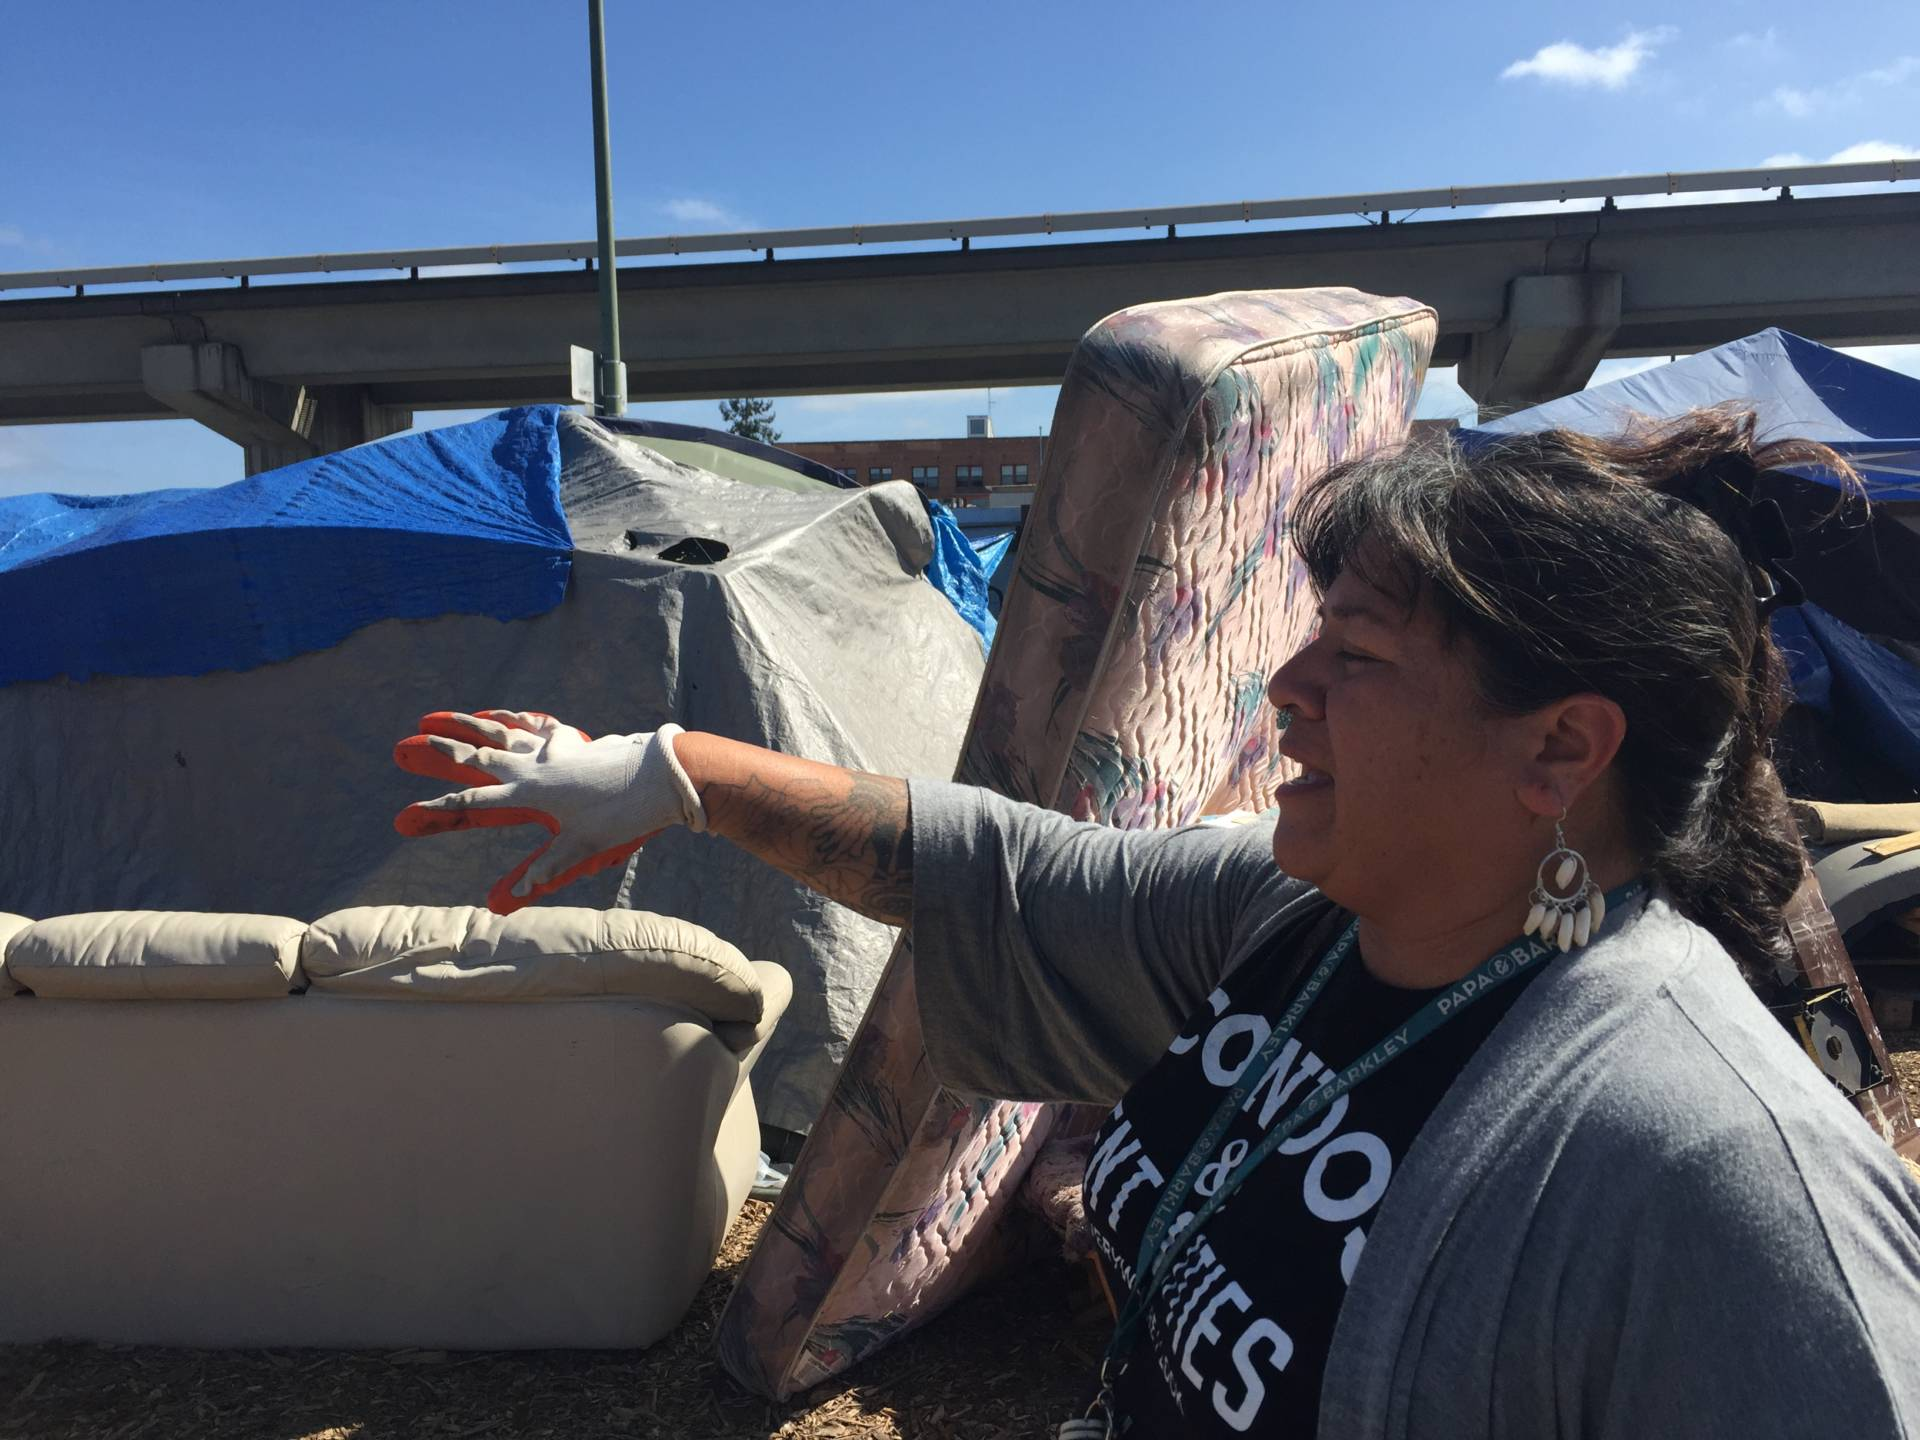 Needa Bee, lead organizer for The Village, at an East Oakland encampment this past summer.  Tara Siler/KQED